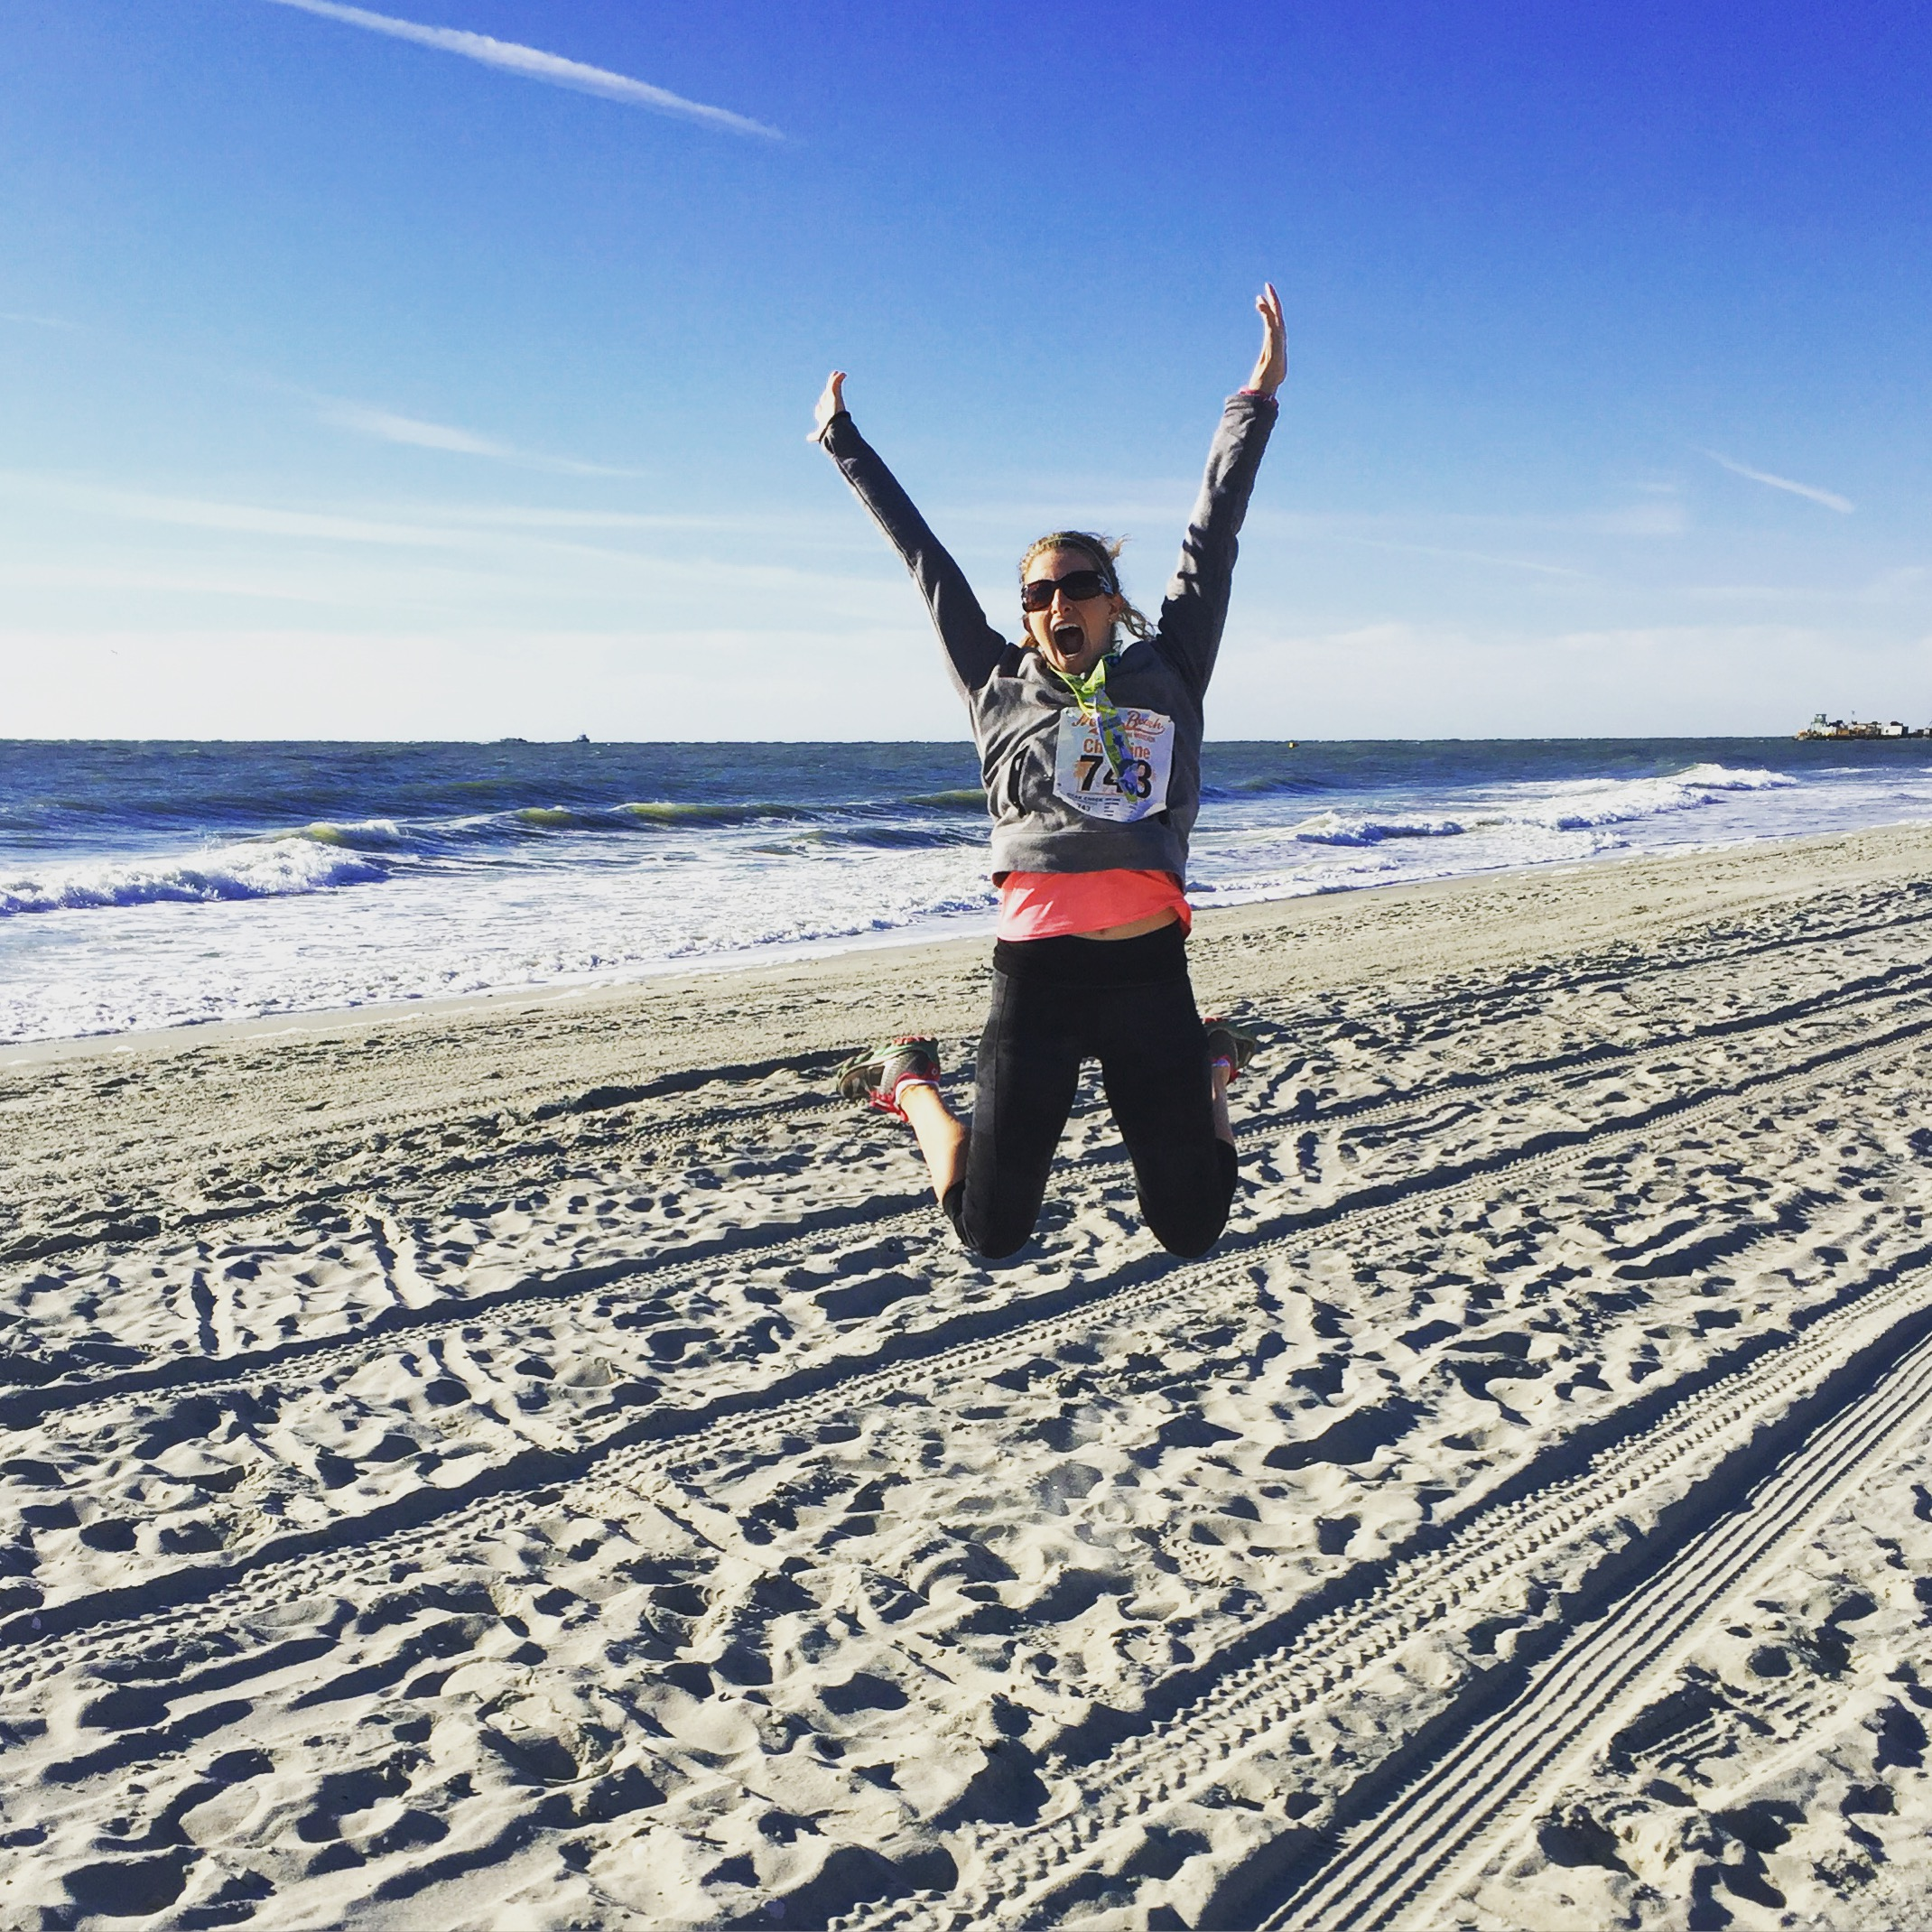 When you PR in a half marathon, you jump on the beach